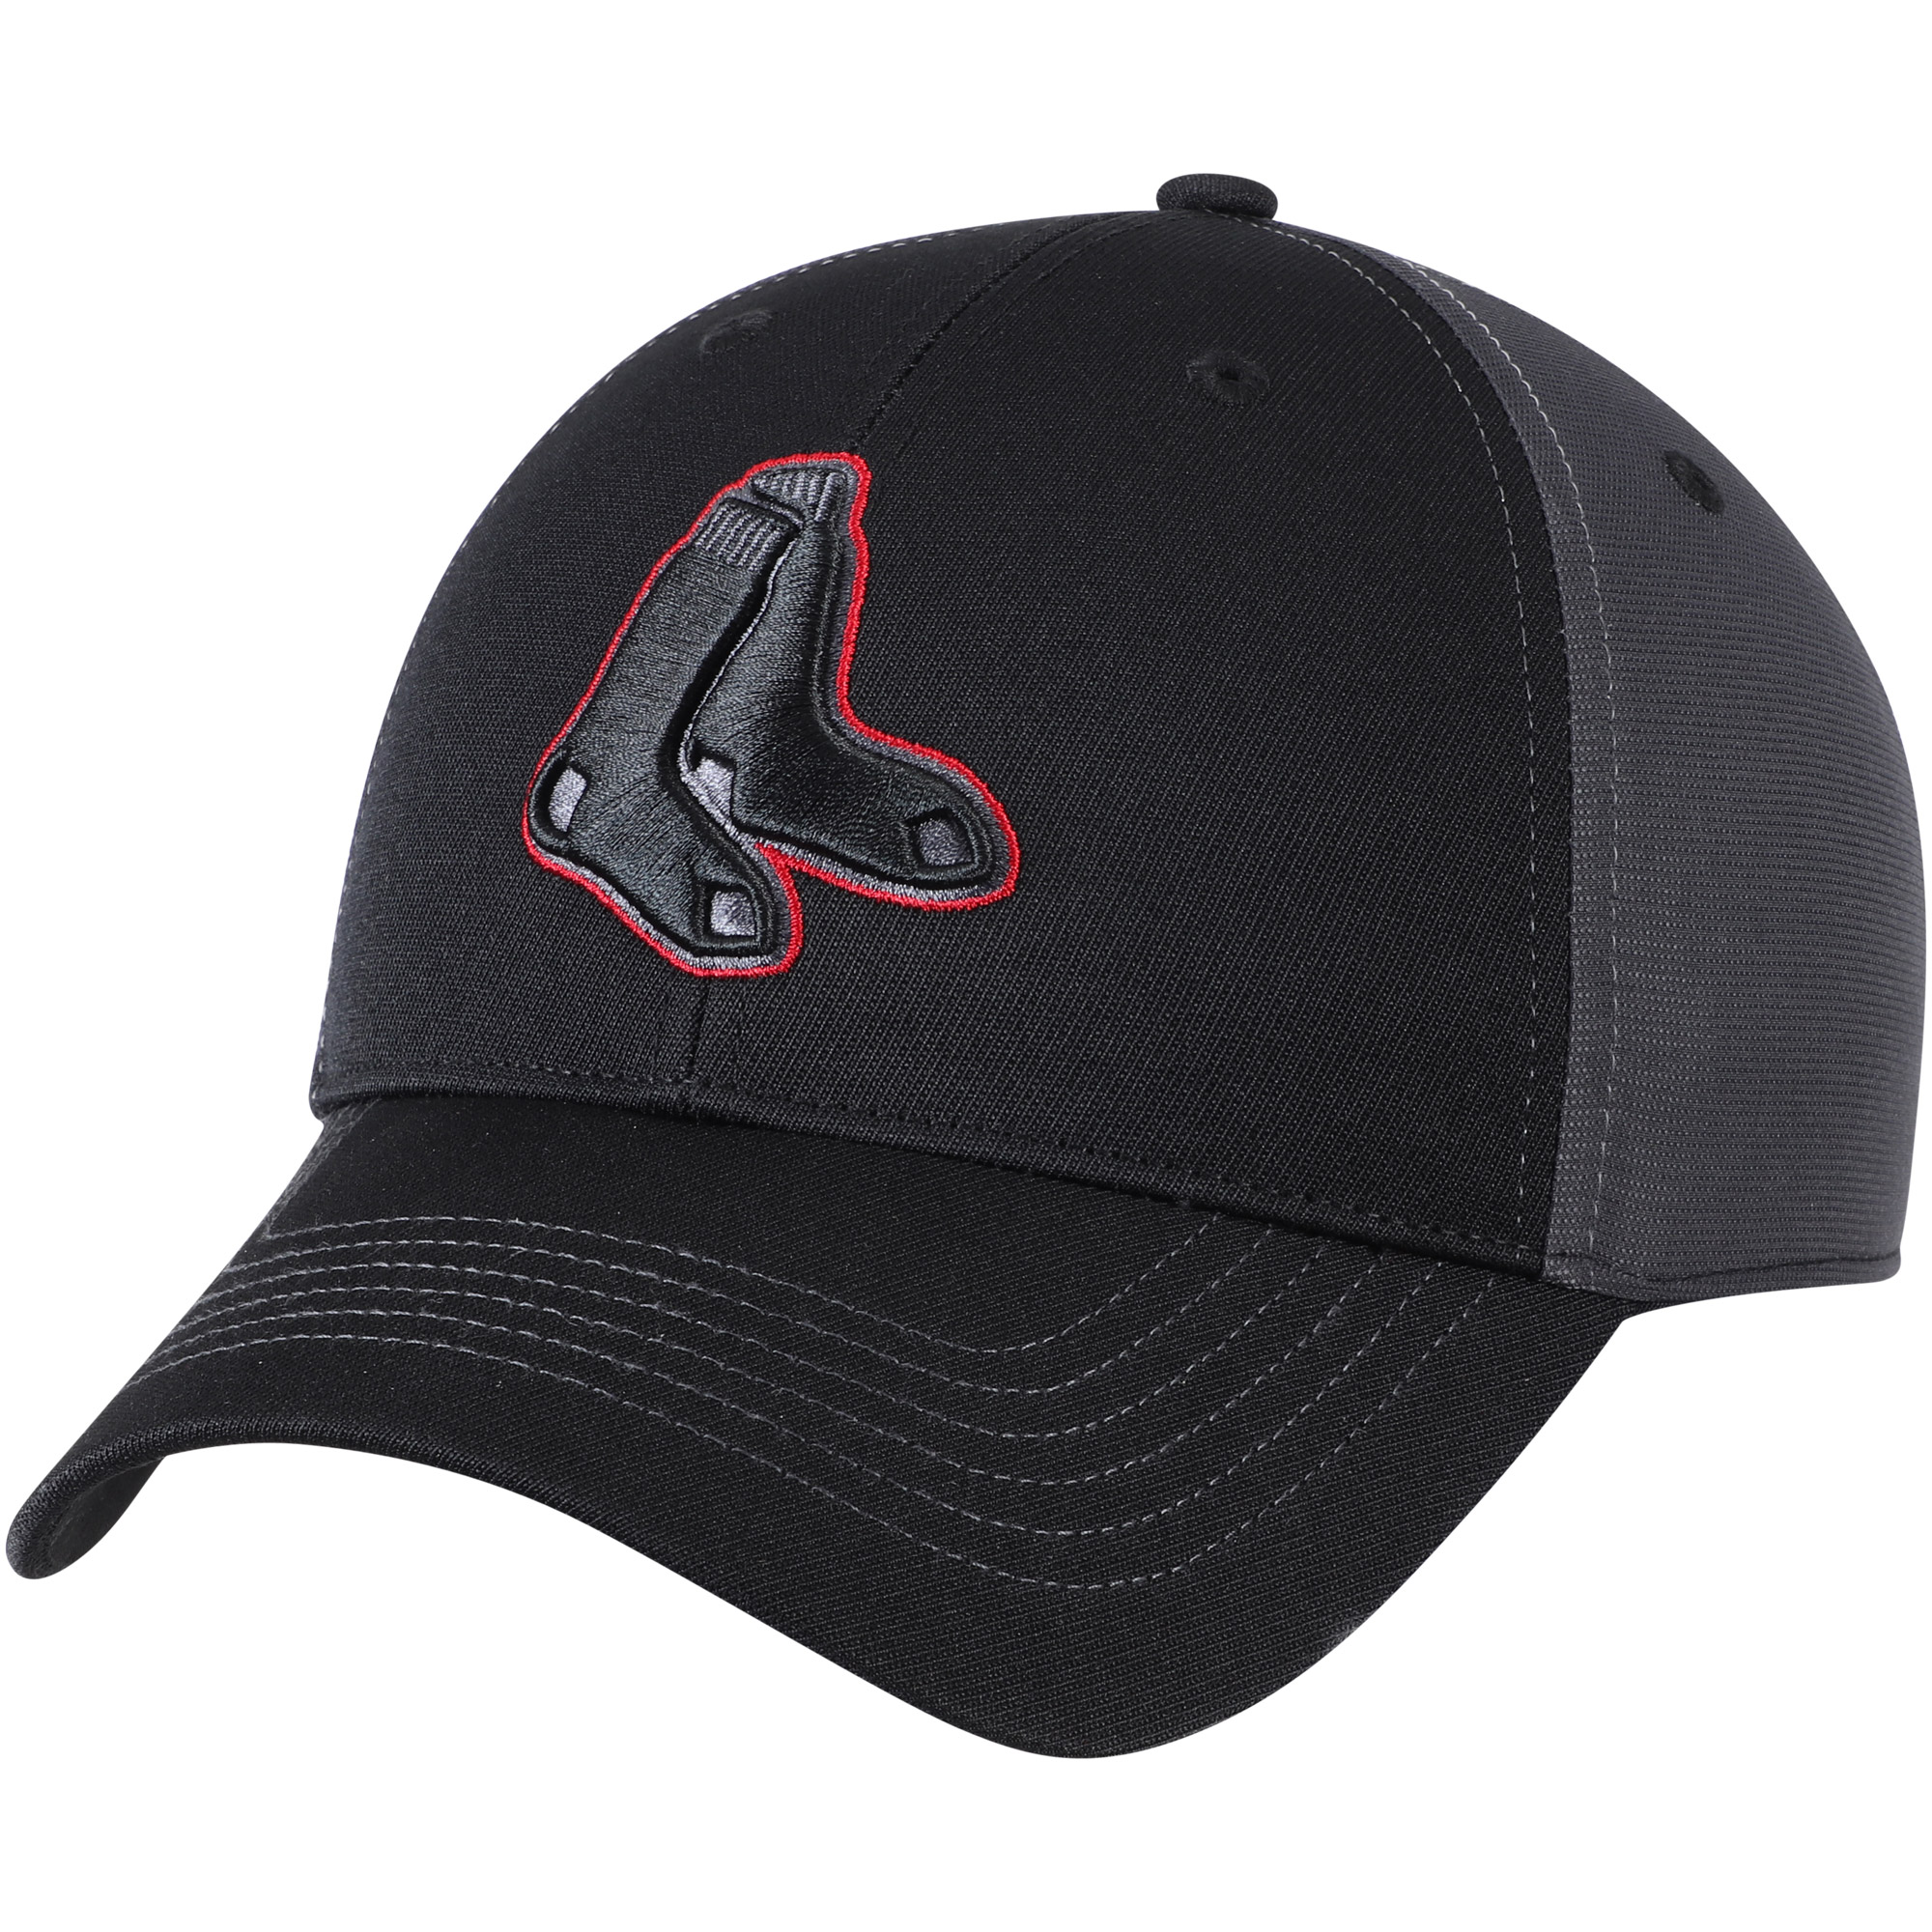 Boston Red Sox Fan Favorite Blackball Adjustable Hat - Black/Charcoal - OSFA